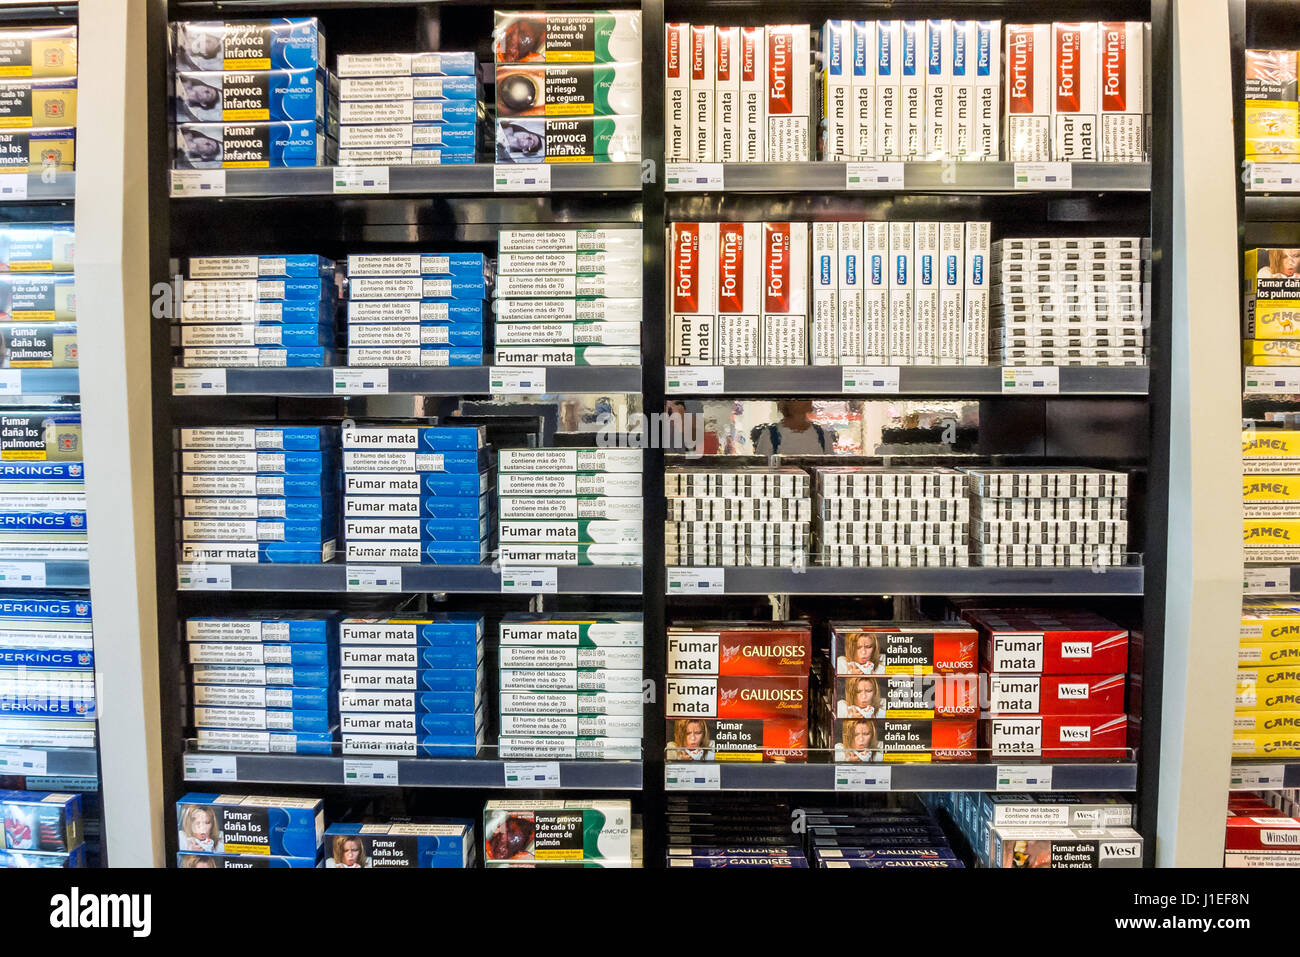 Duty Free Cigarettes High Resolution Stock Photography And Images Alamy